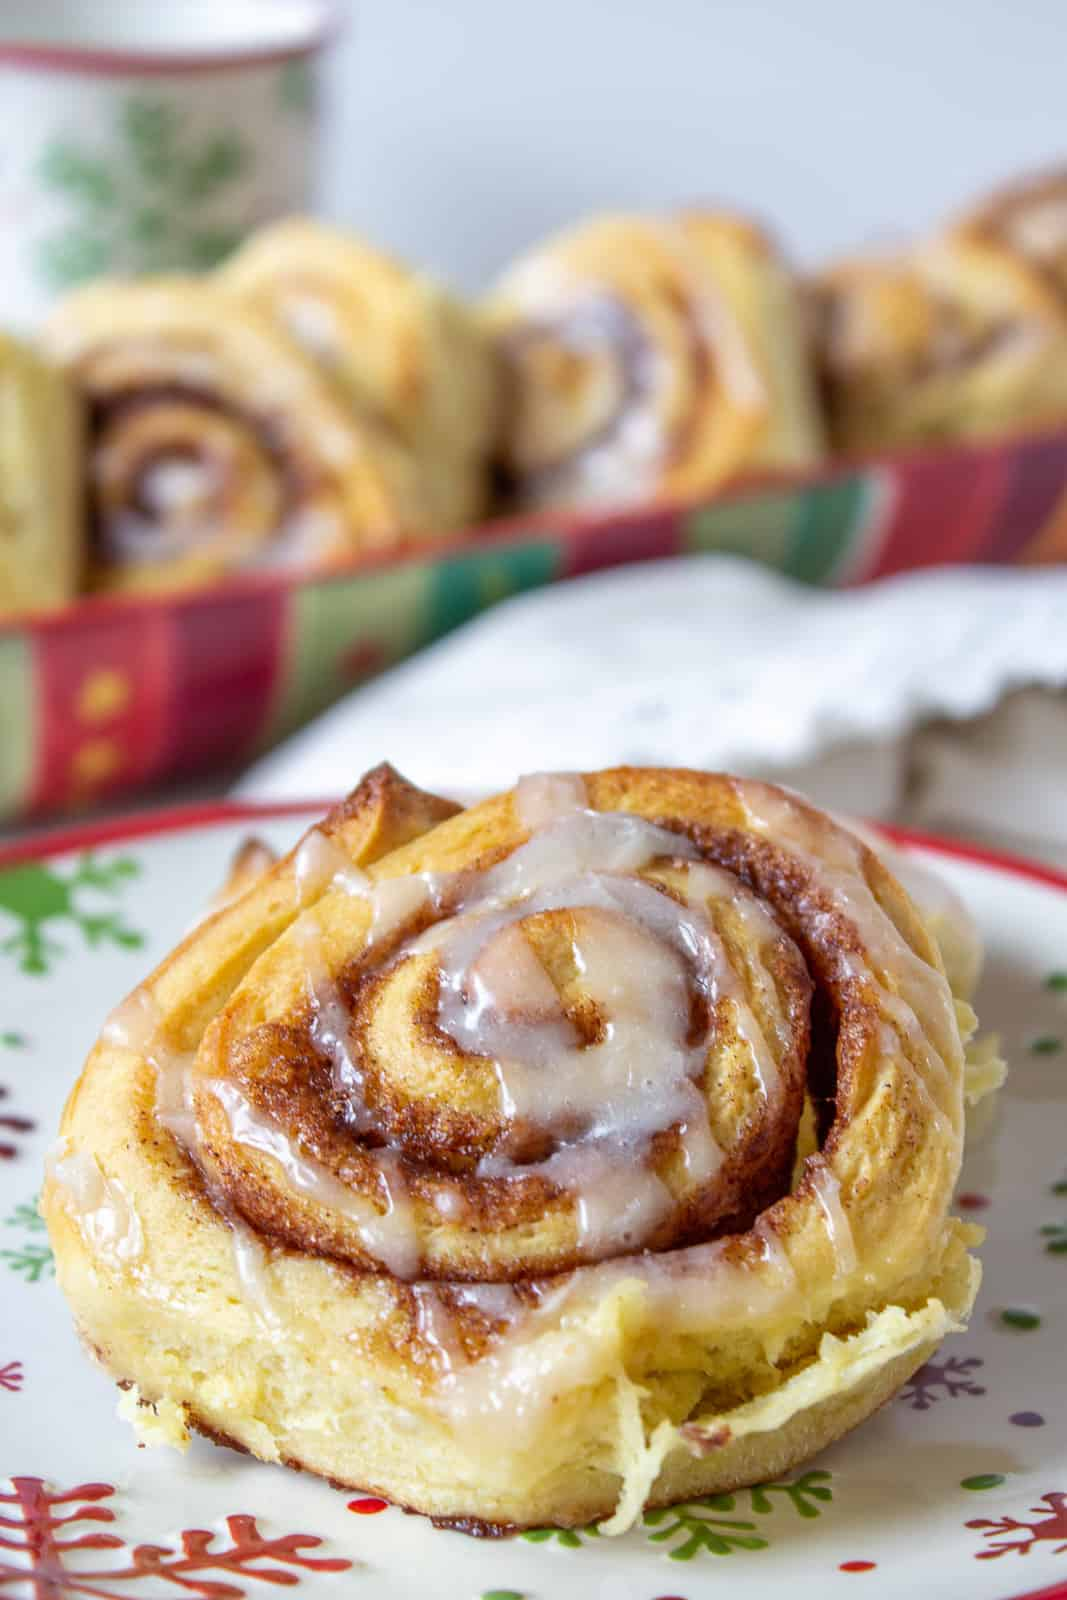 A cinnamon roll topped with a drizzled glaze.